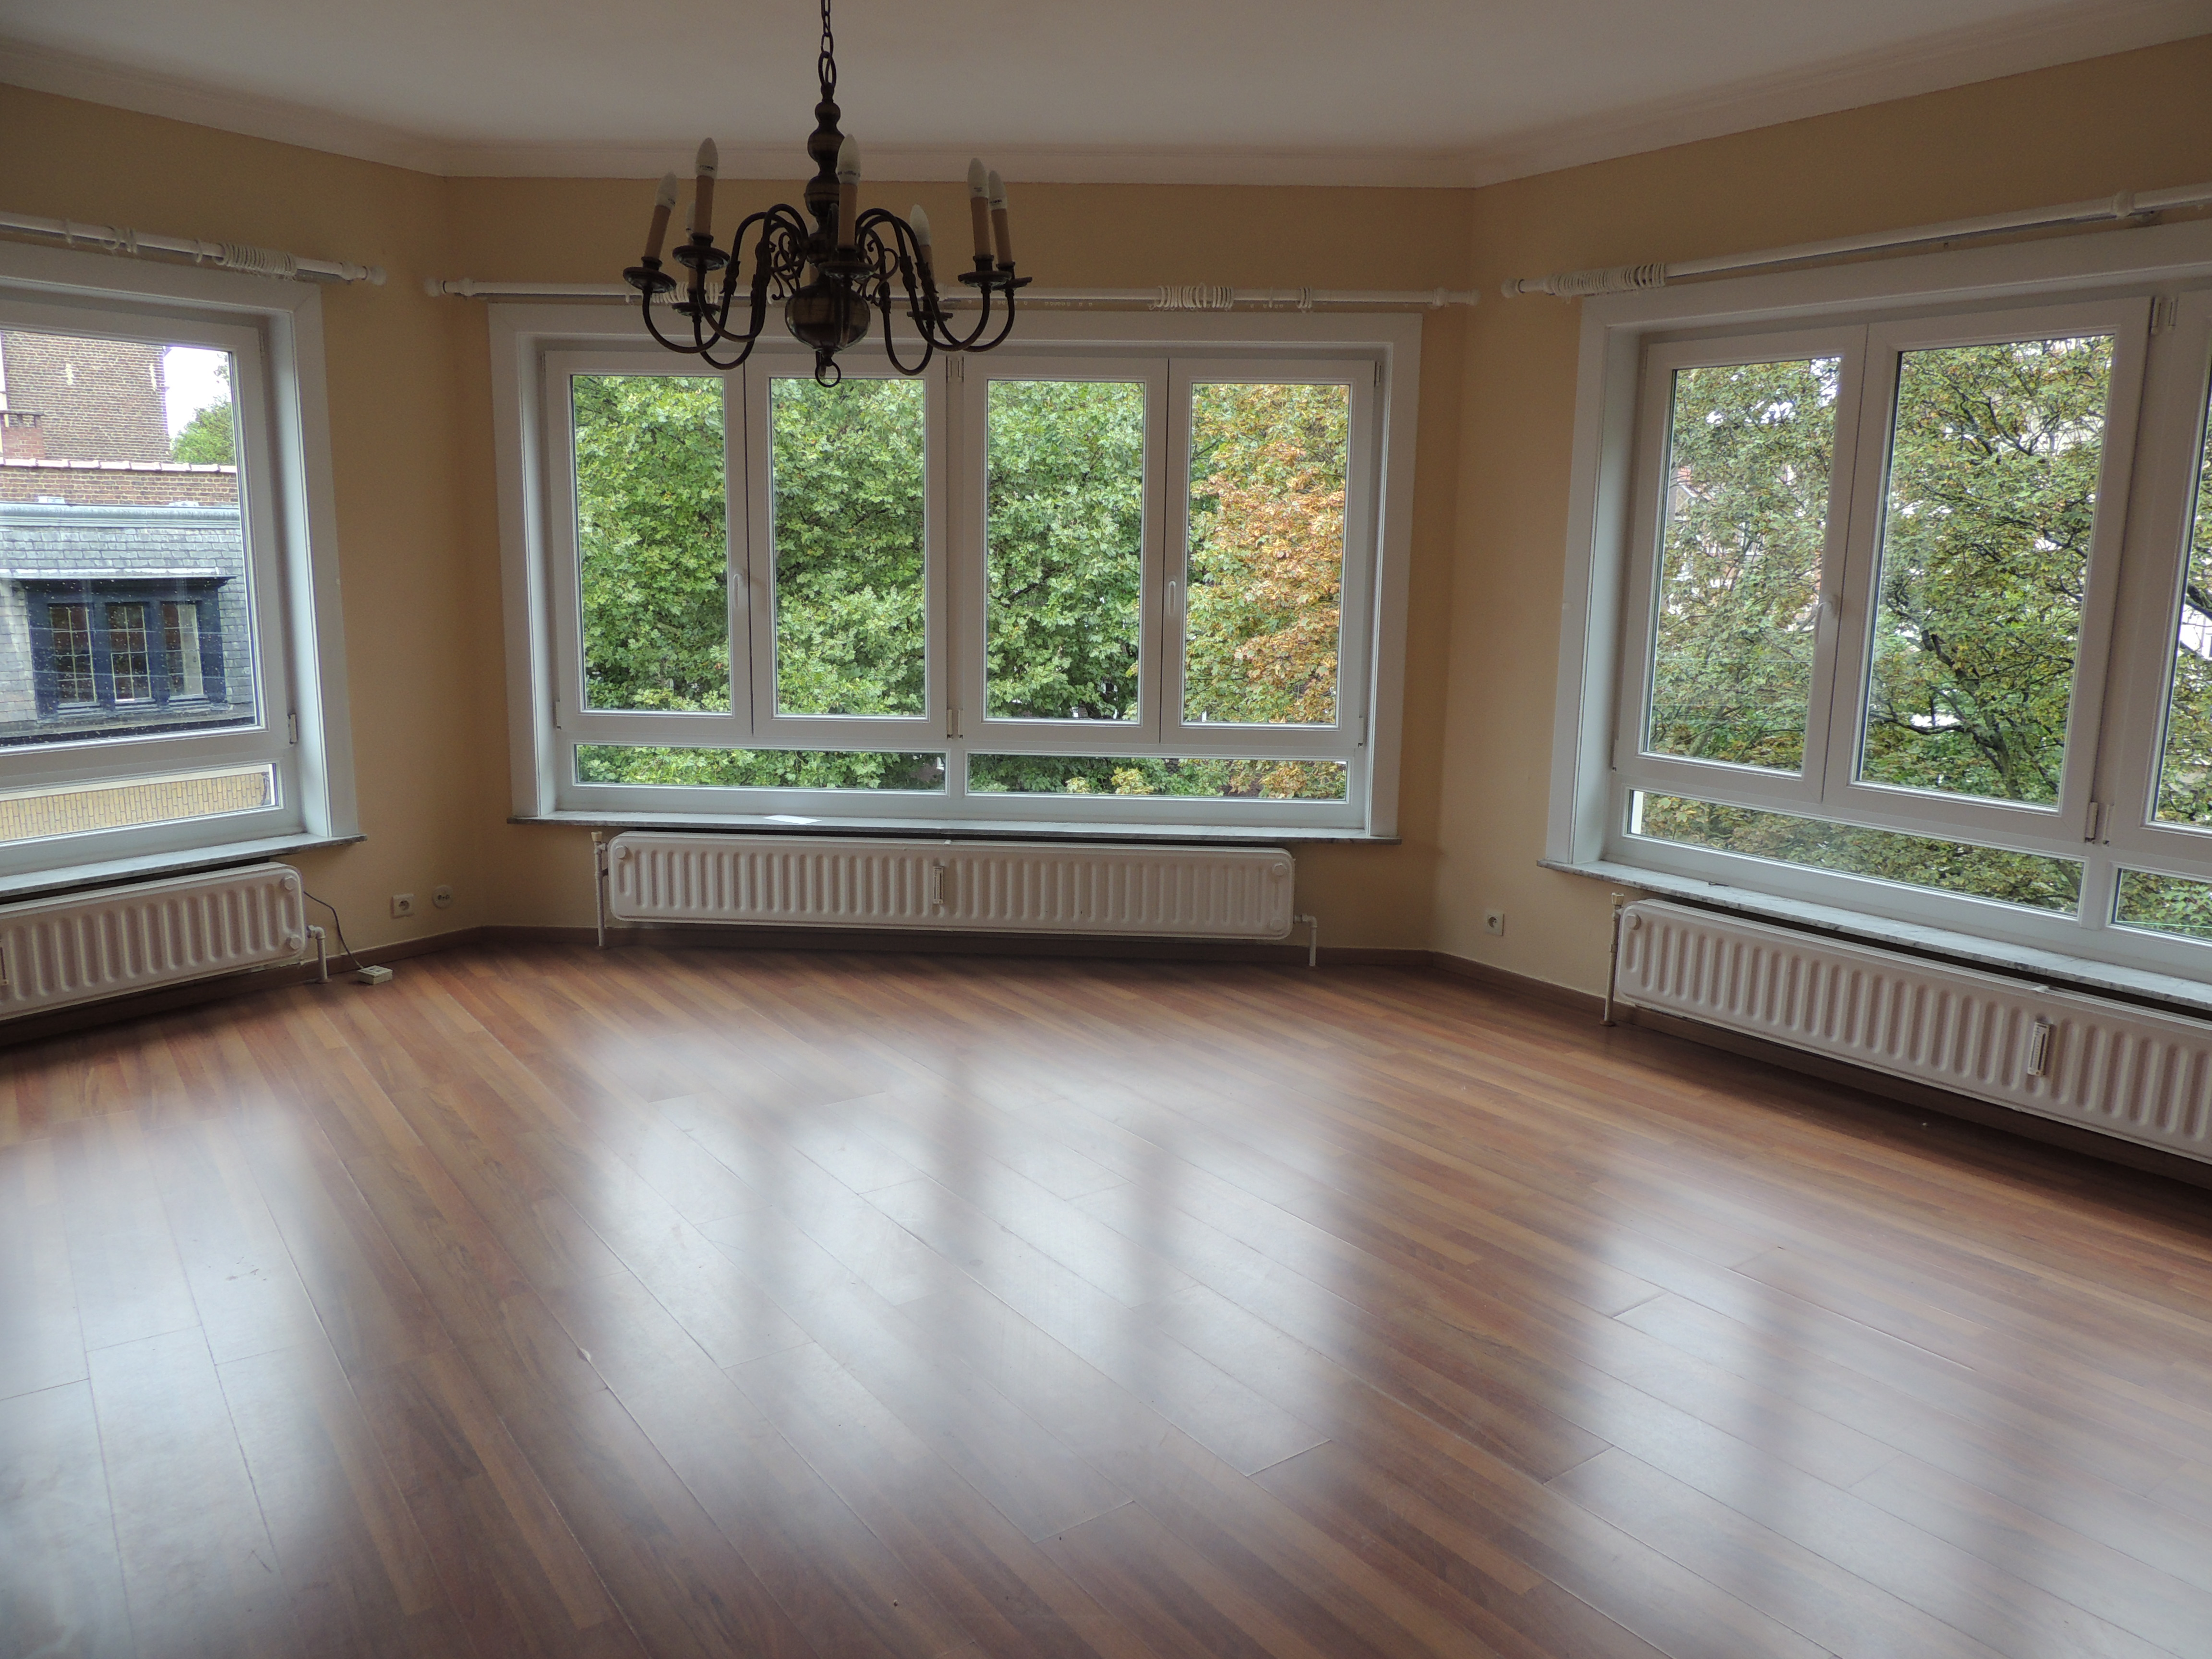 Appartement louer 3 chambres 130 m2 avenue moliere for Louer immobilier